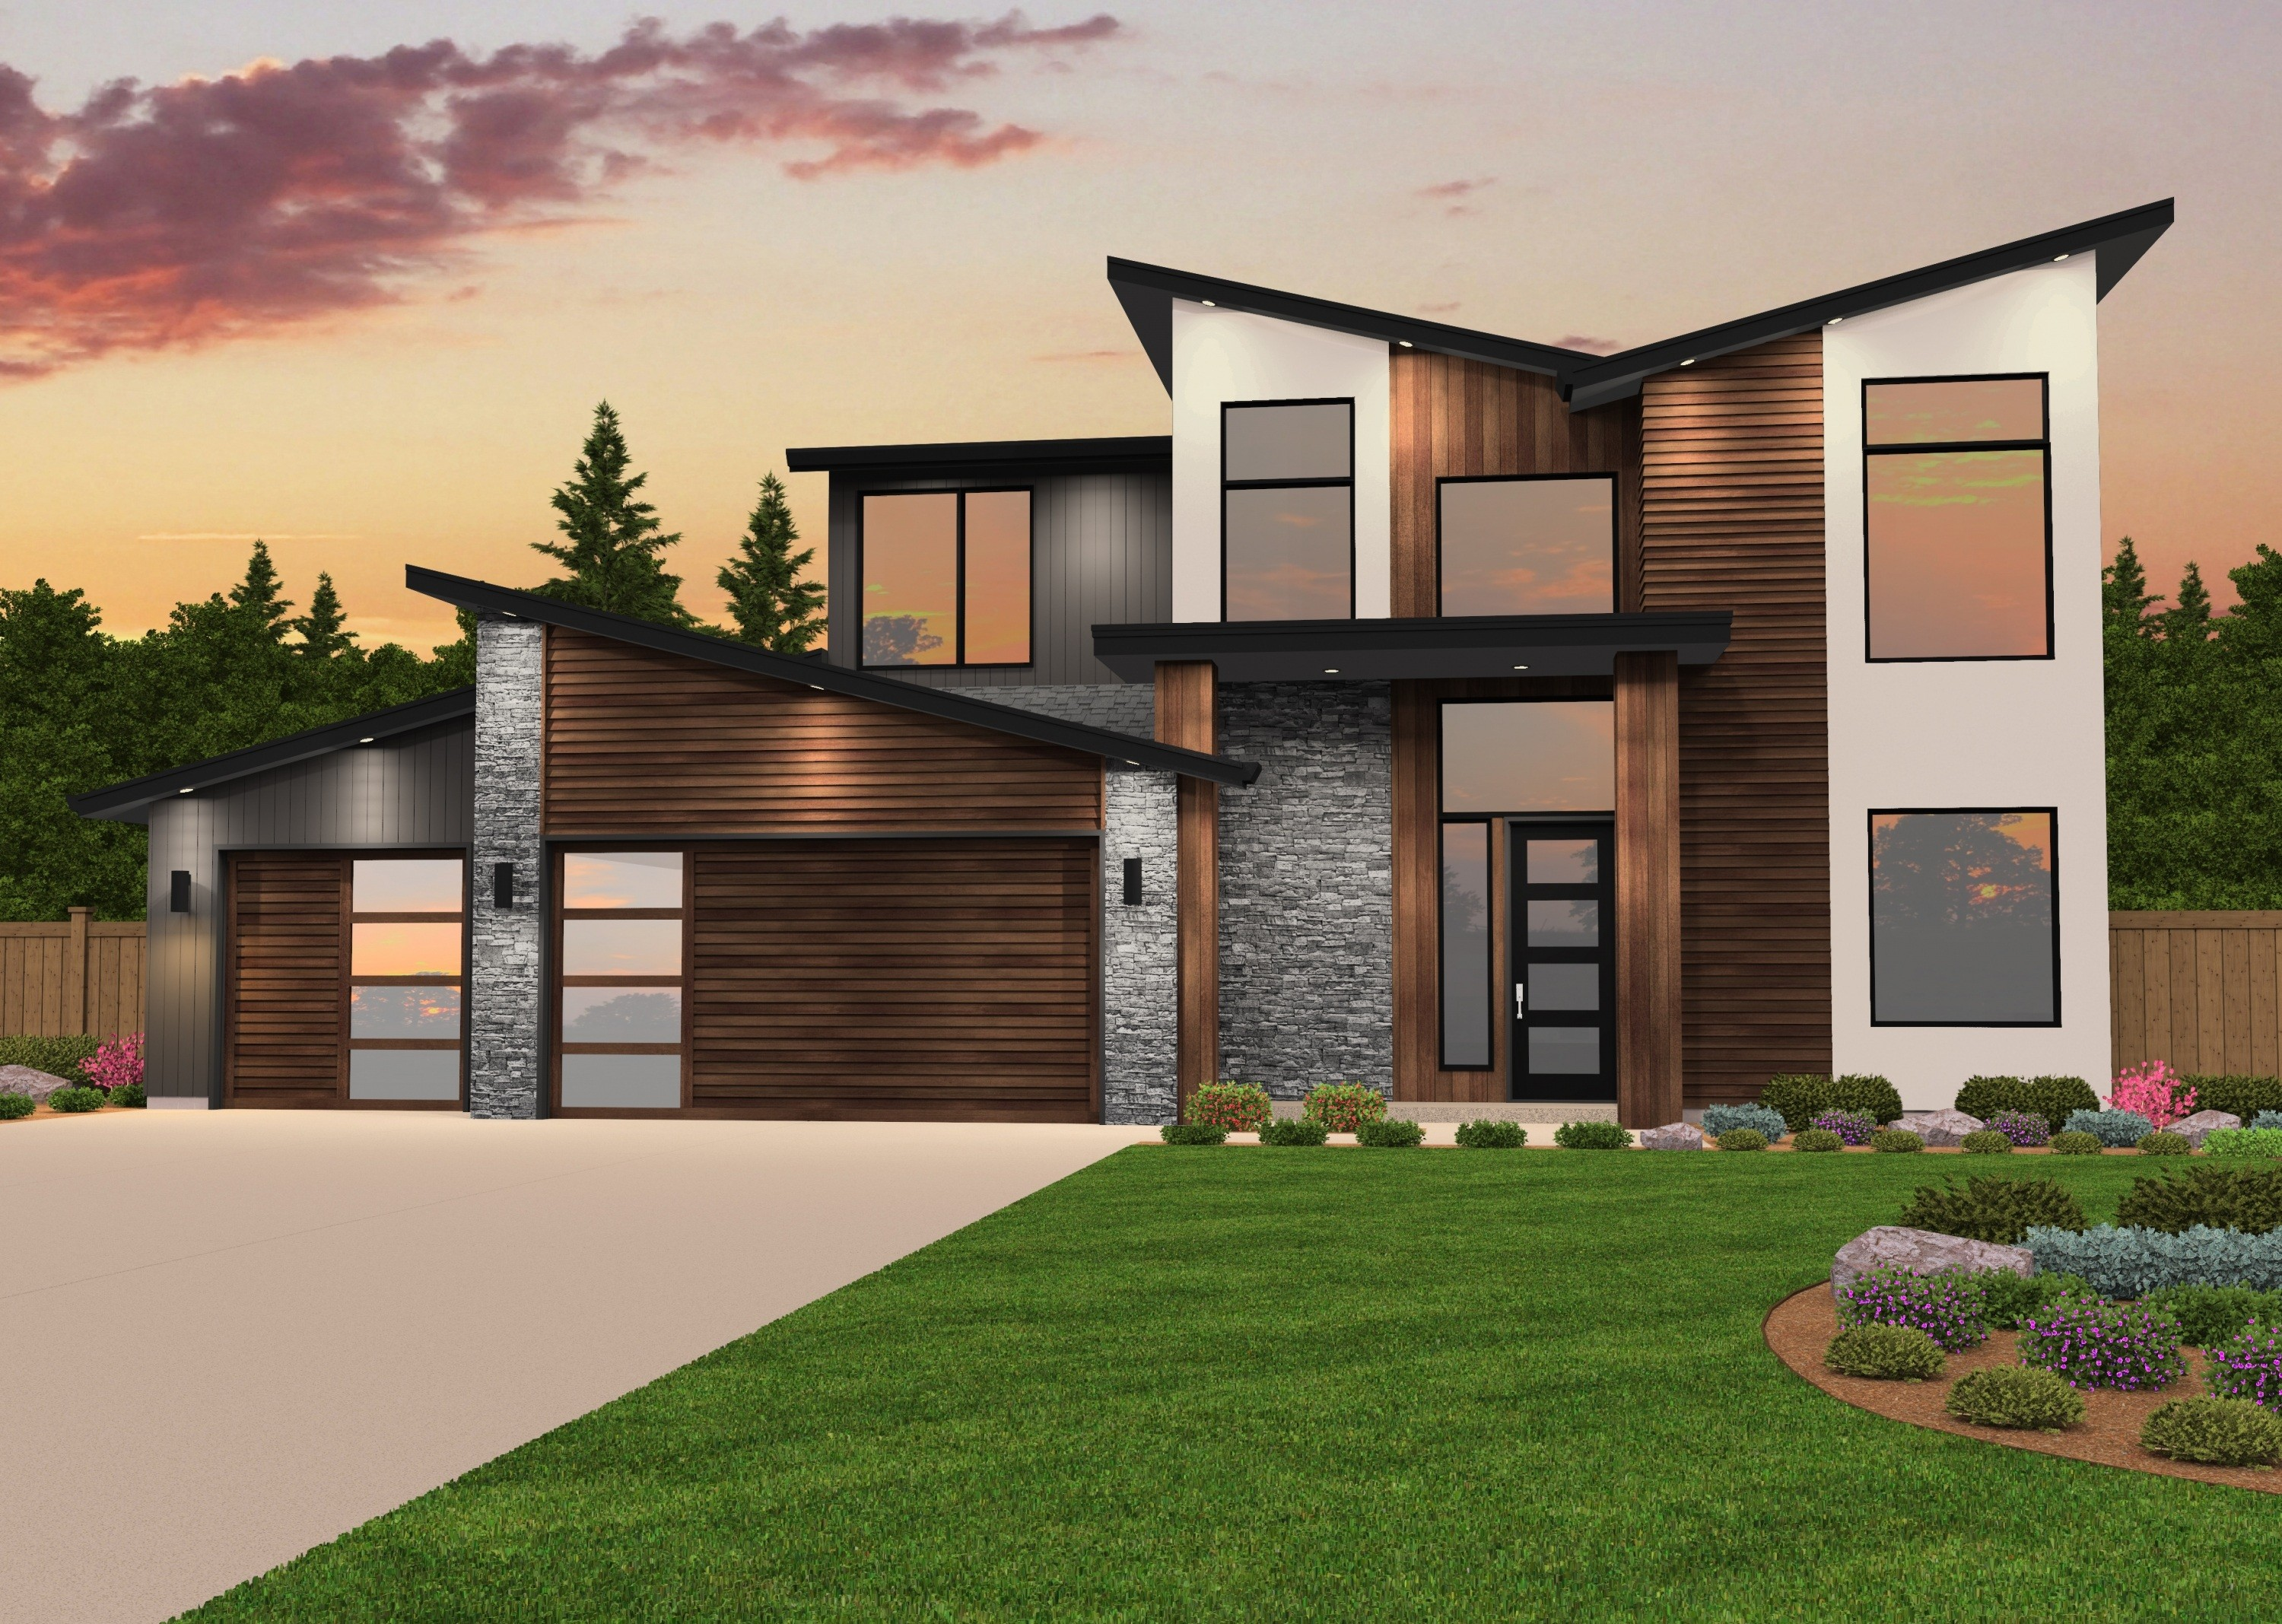 Airborne house plan modern house plans for Modern house designs victoria